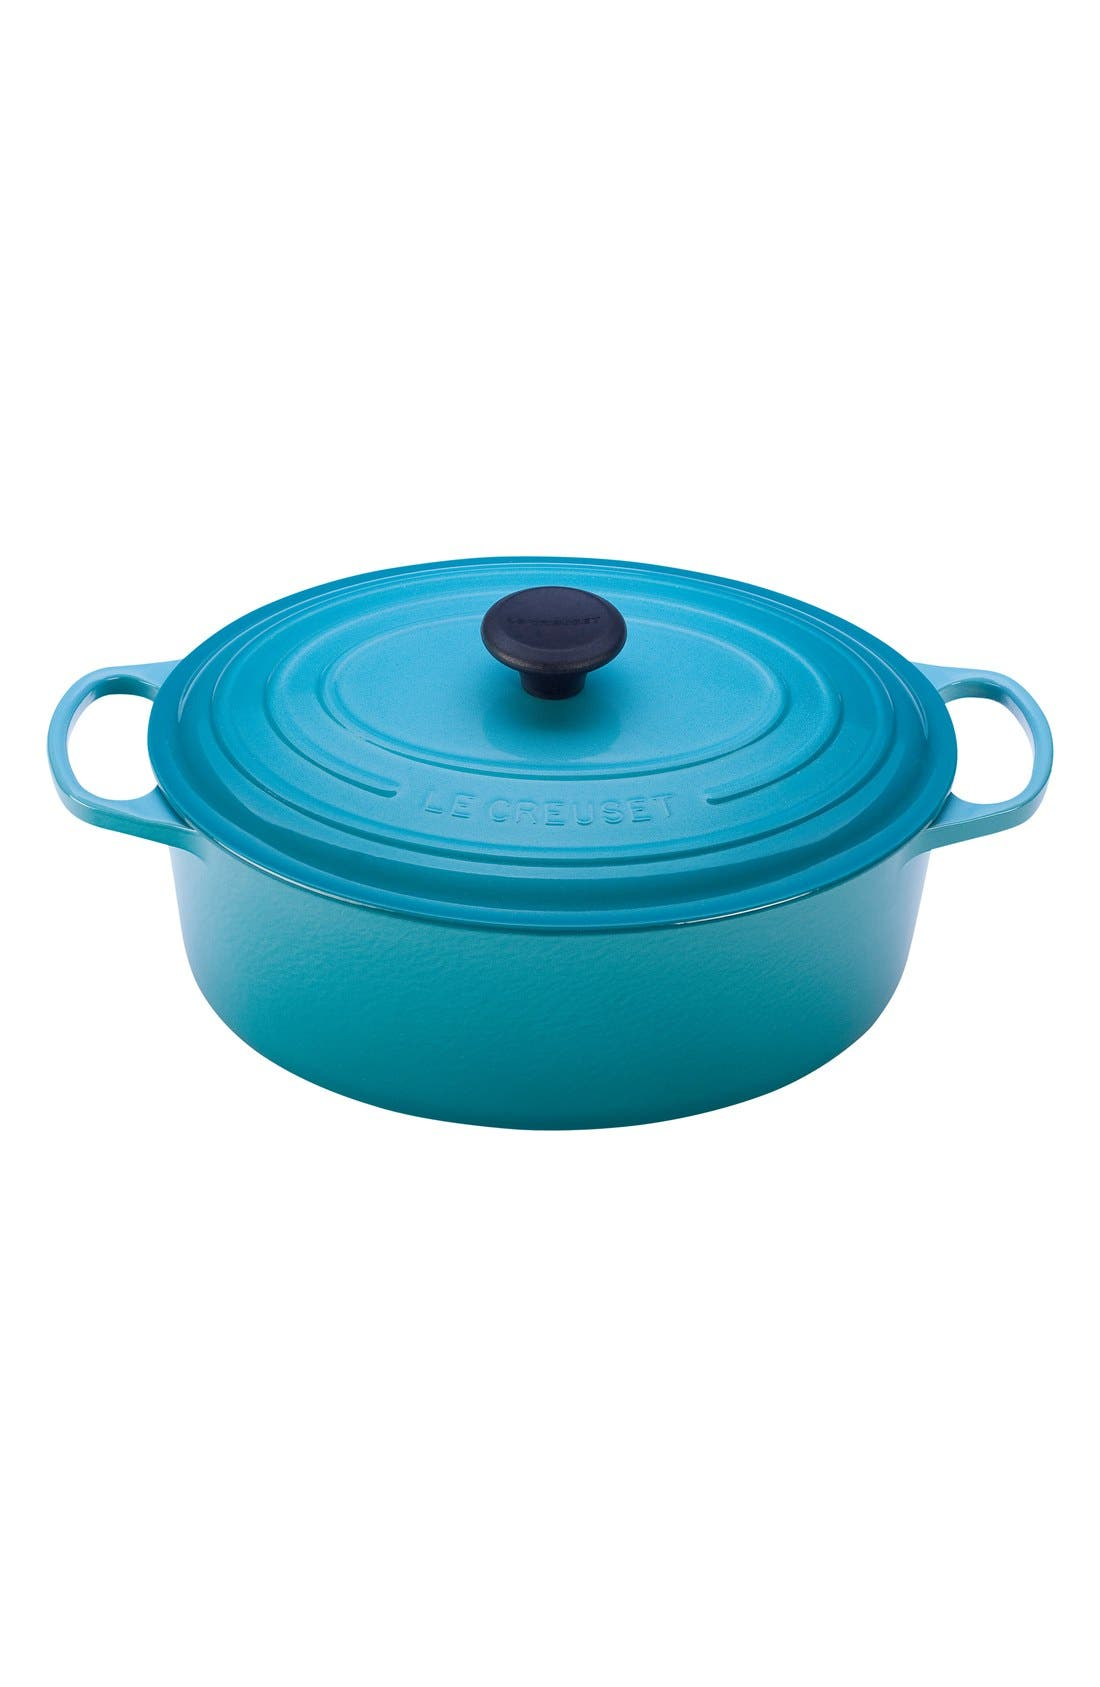 Signature 5 Quart Oval Enamel Cast Iron French/Dutch Oven,                             Main thumbnail 1, color,                             CARIBBEAN